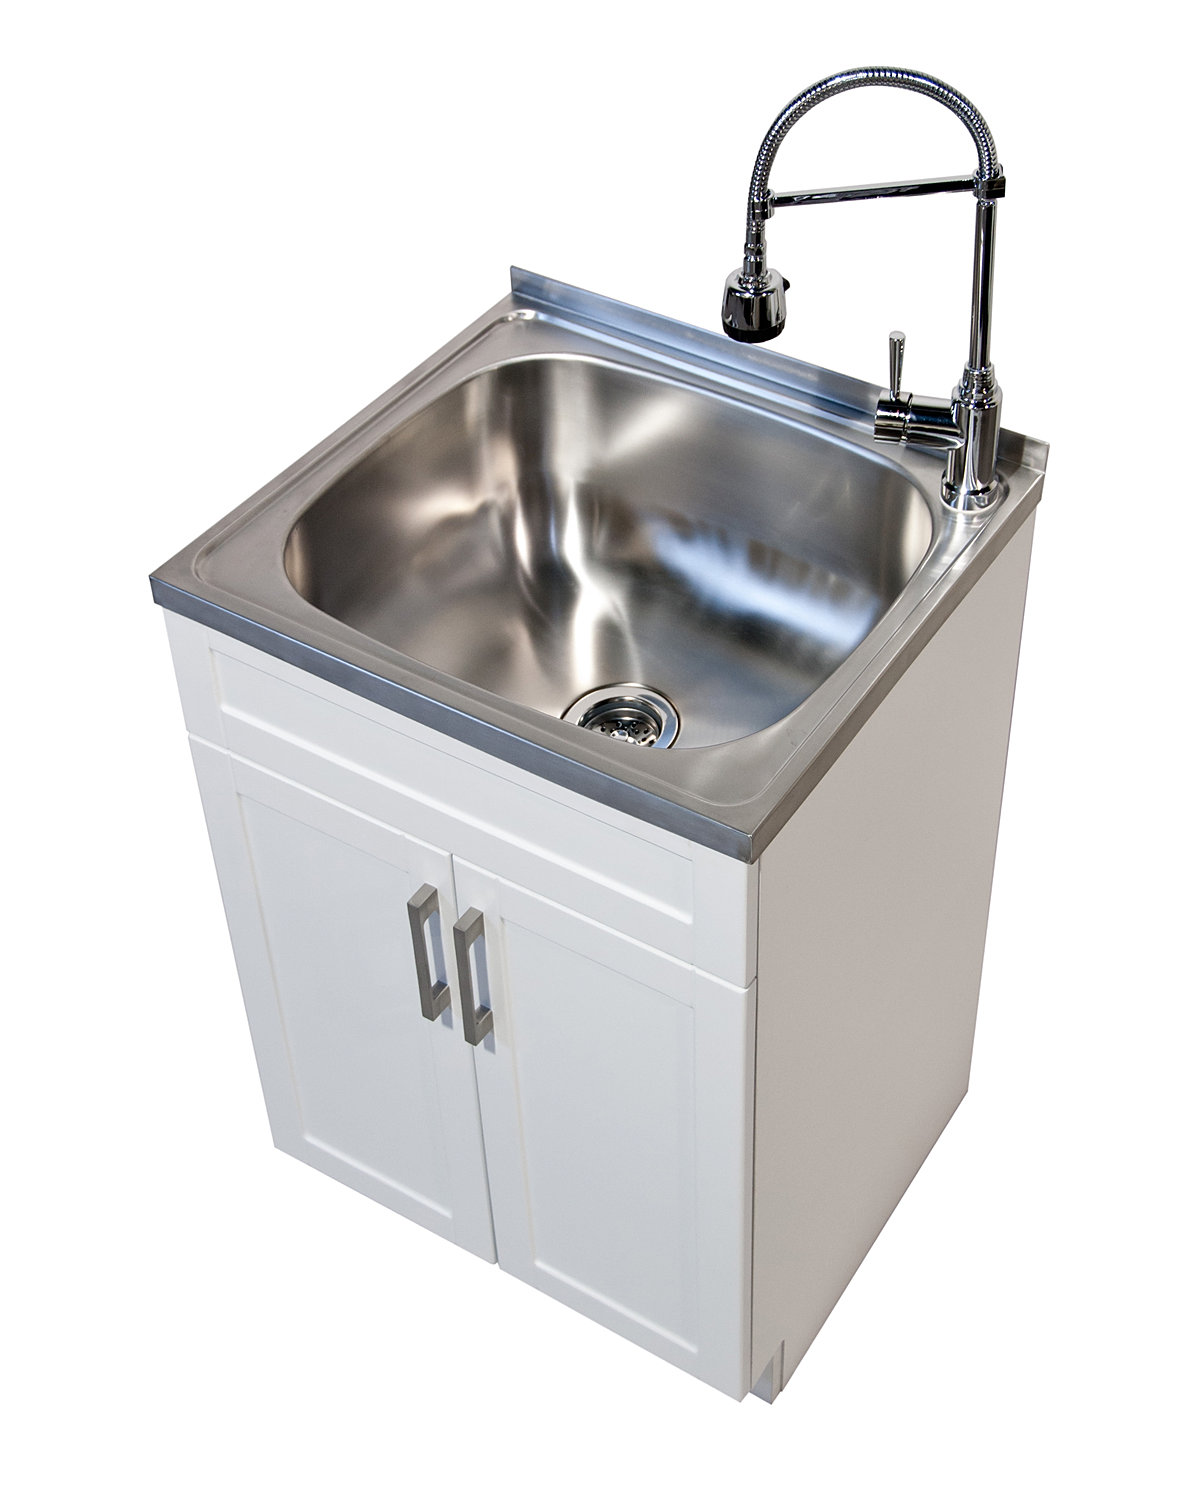 Laundry Sink Cabinet Stainless Steel : Simpli Home furniture, vanities, mirrors, laundry cabinets and patio